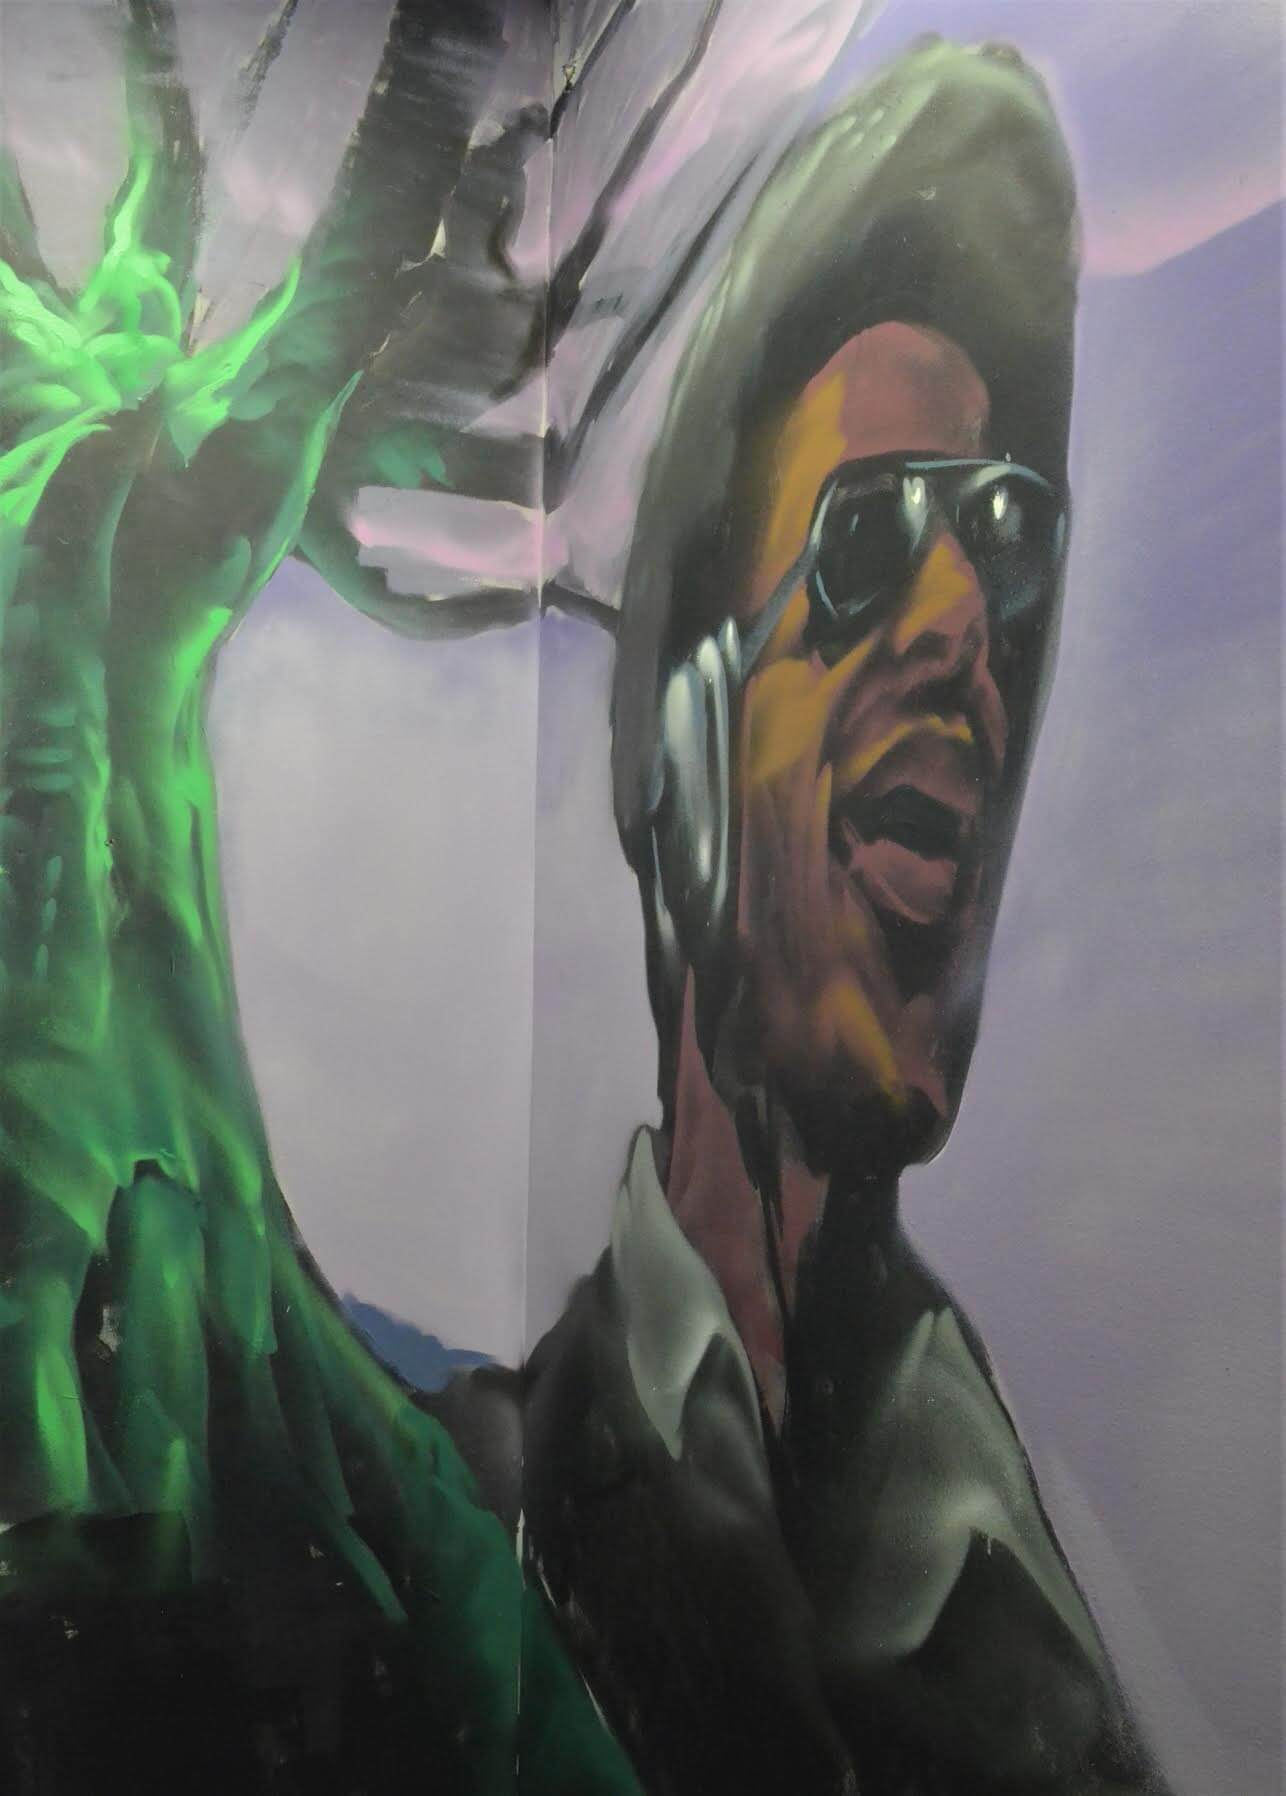 You can glimpse another one of our heroes, Stevie Wonder, as you enter the venue.